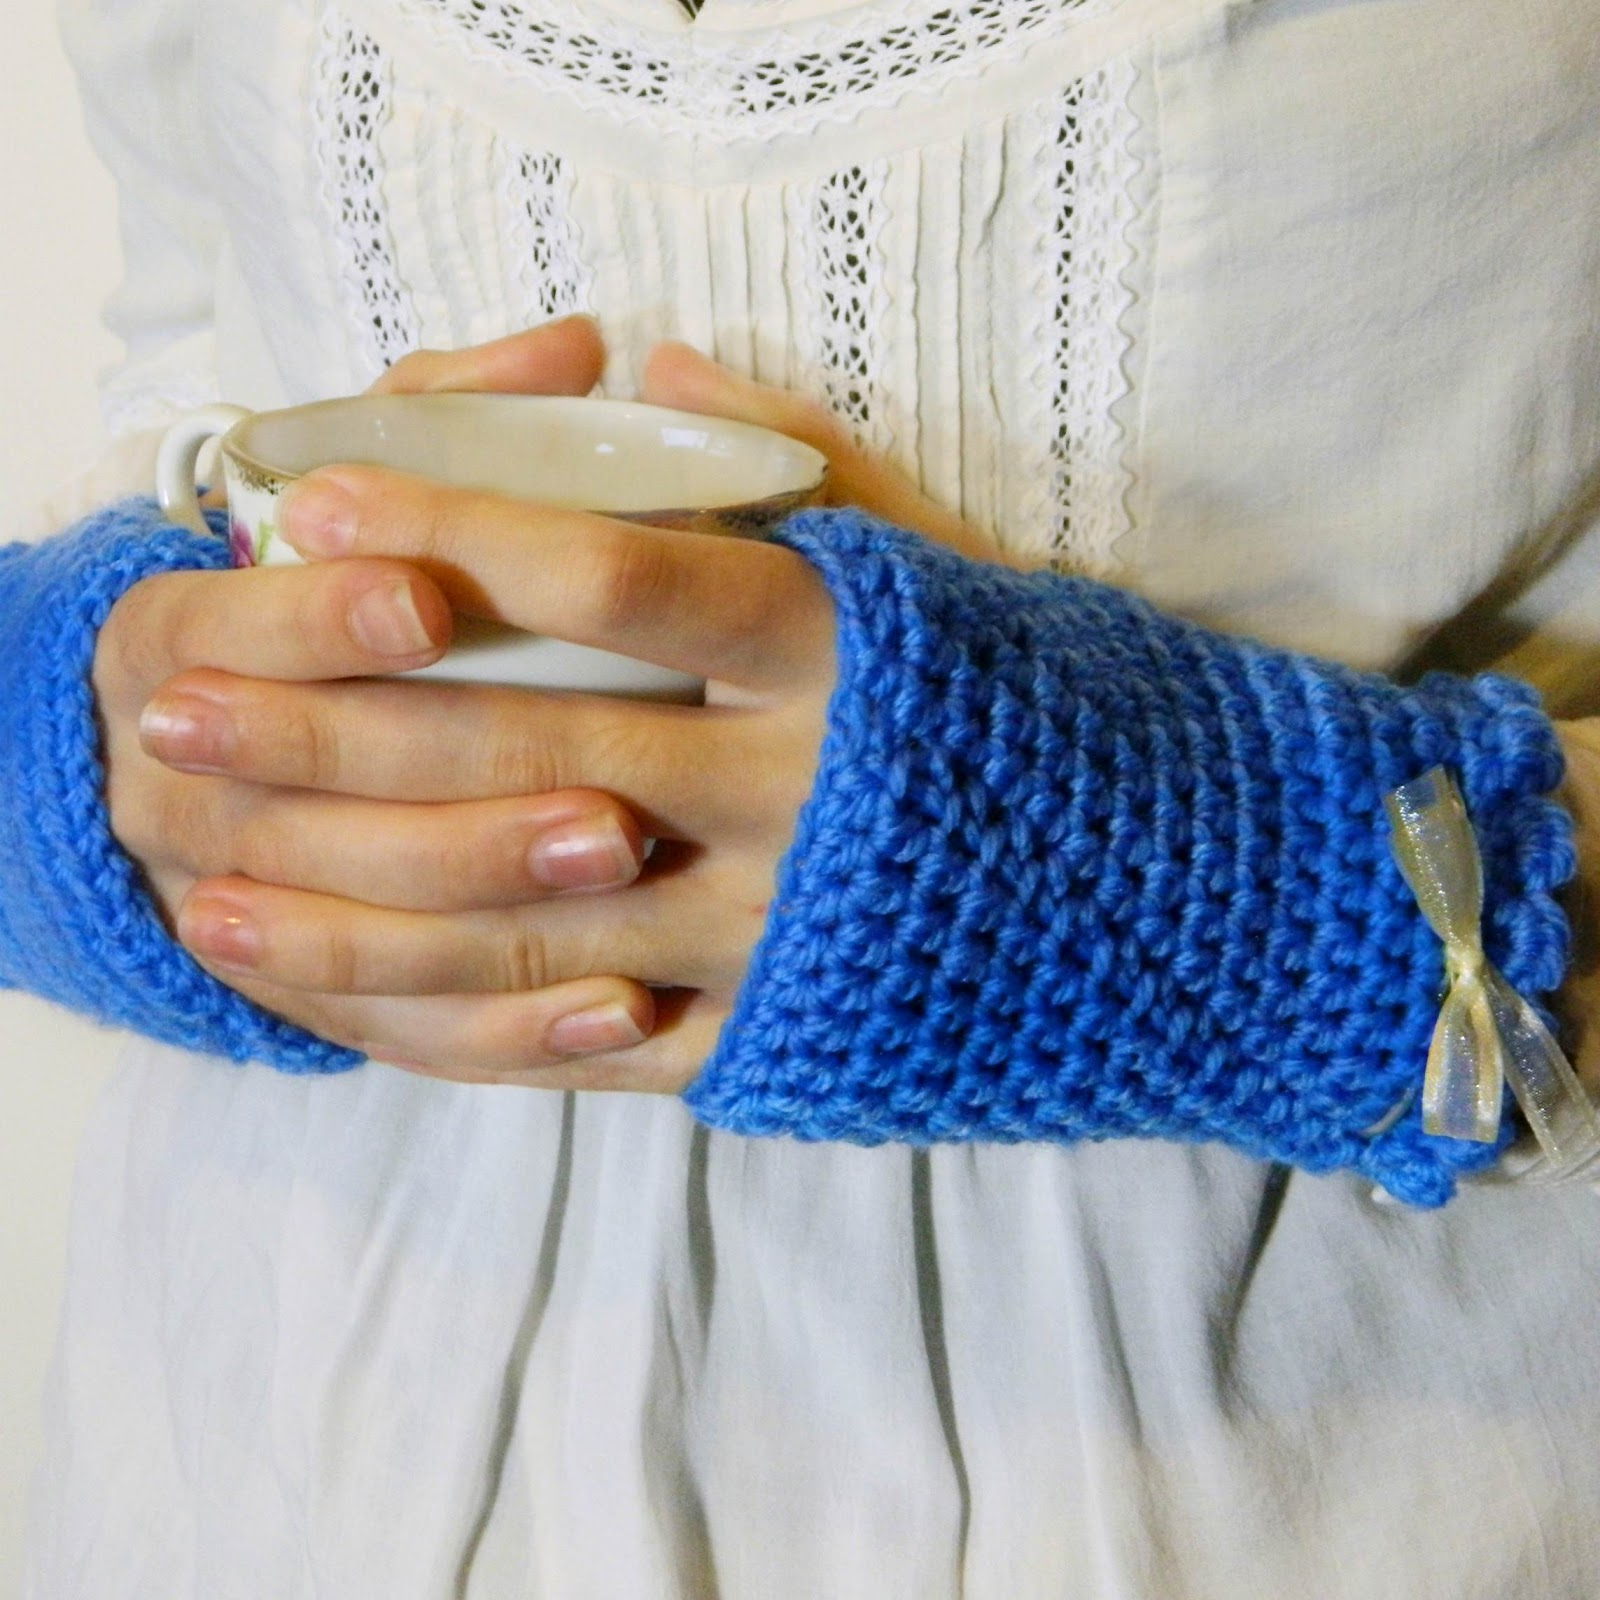 Crochet Fingerless Gloves Tutorials : Hopeful Honey Craft, Crochet, Create: Confessions of a ...